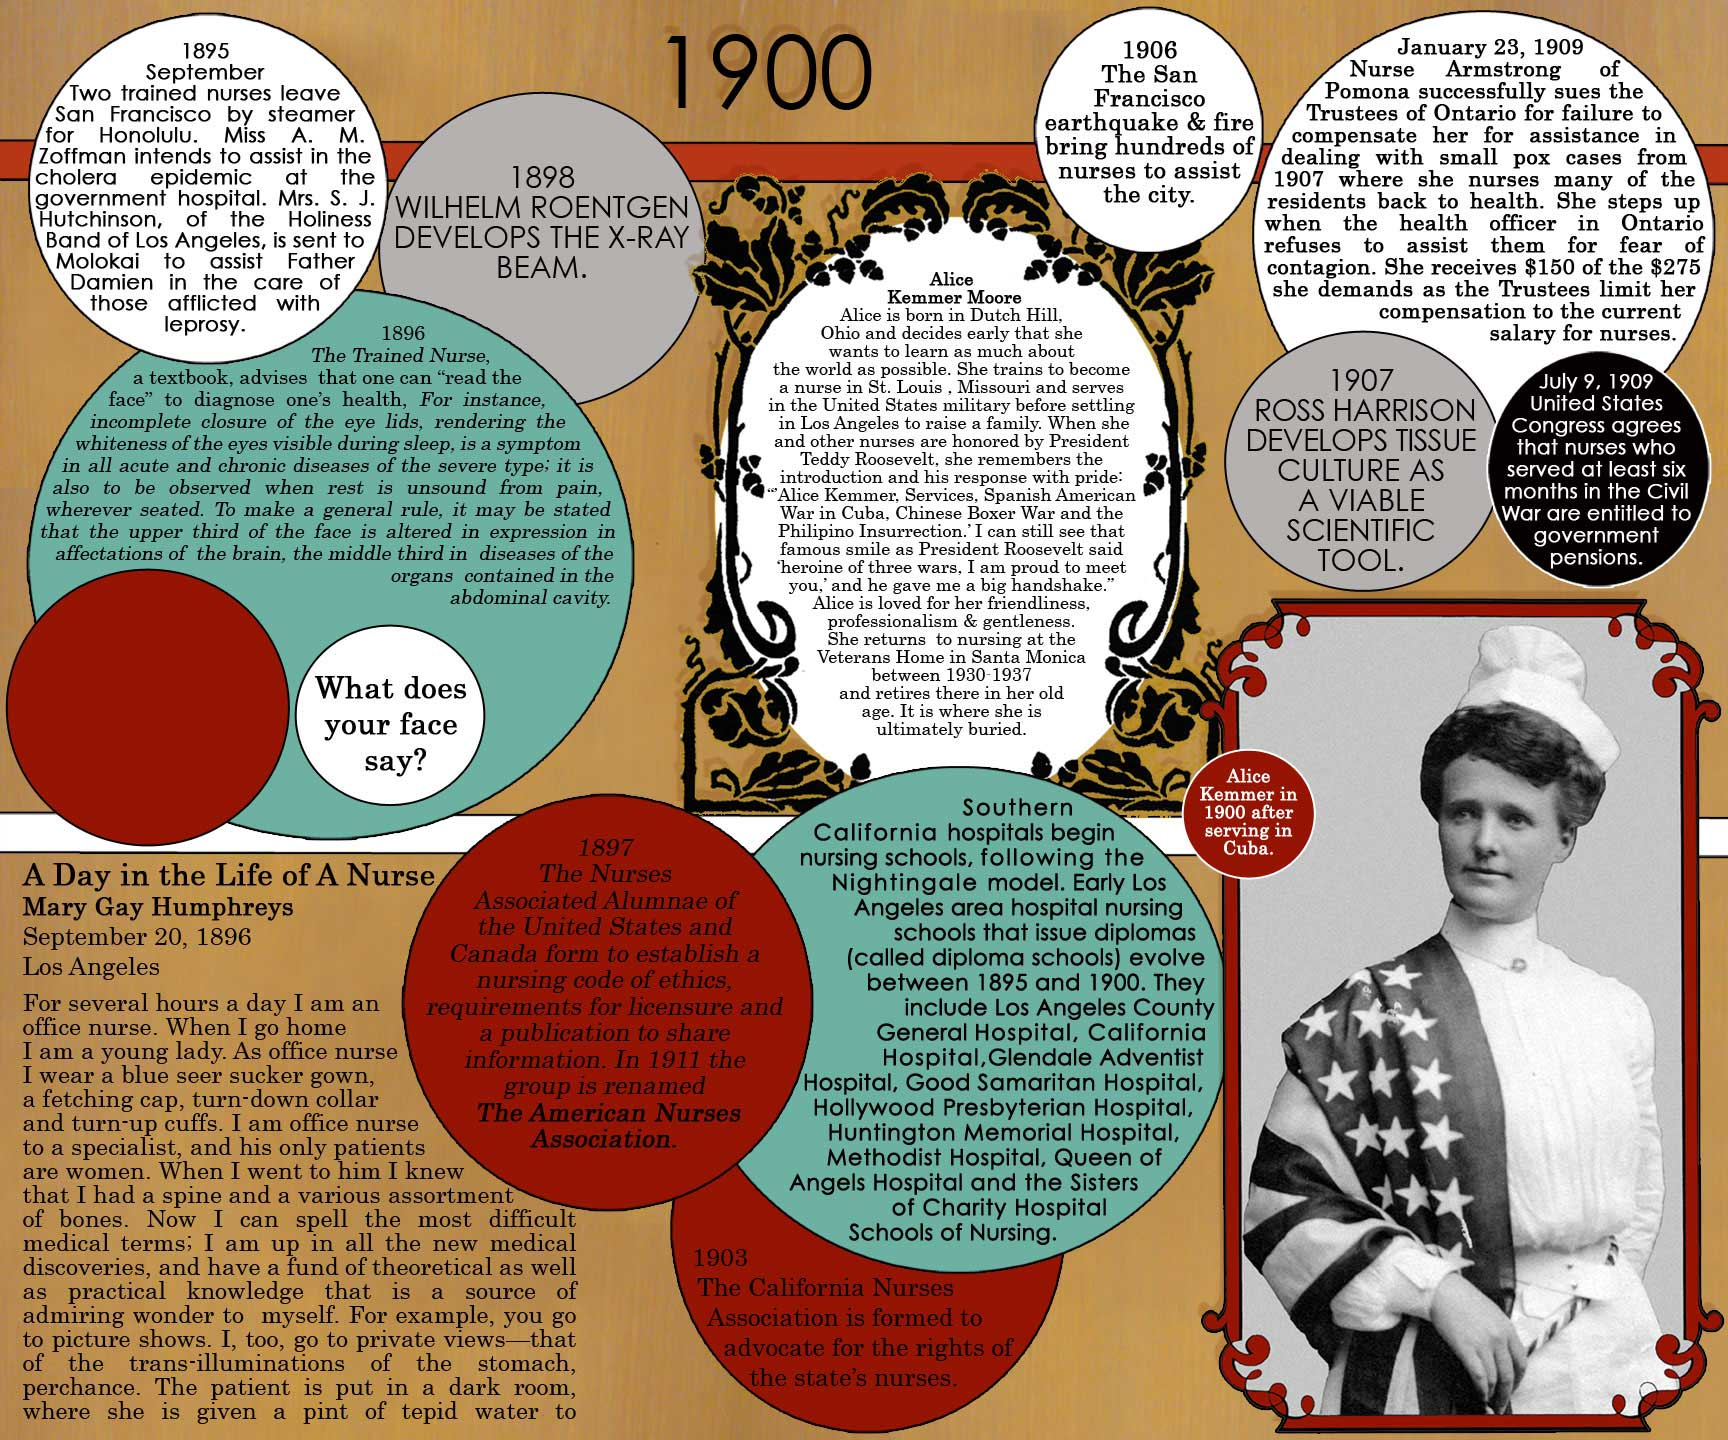 the history of nursing History of nursing history of nursing research papers discuss the beginning of hospitals in the 4th century and how modern nursing came about below is a model introduction of a research paper on the history of nursing.